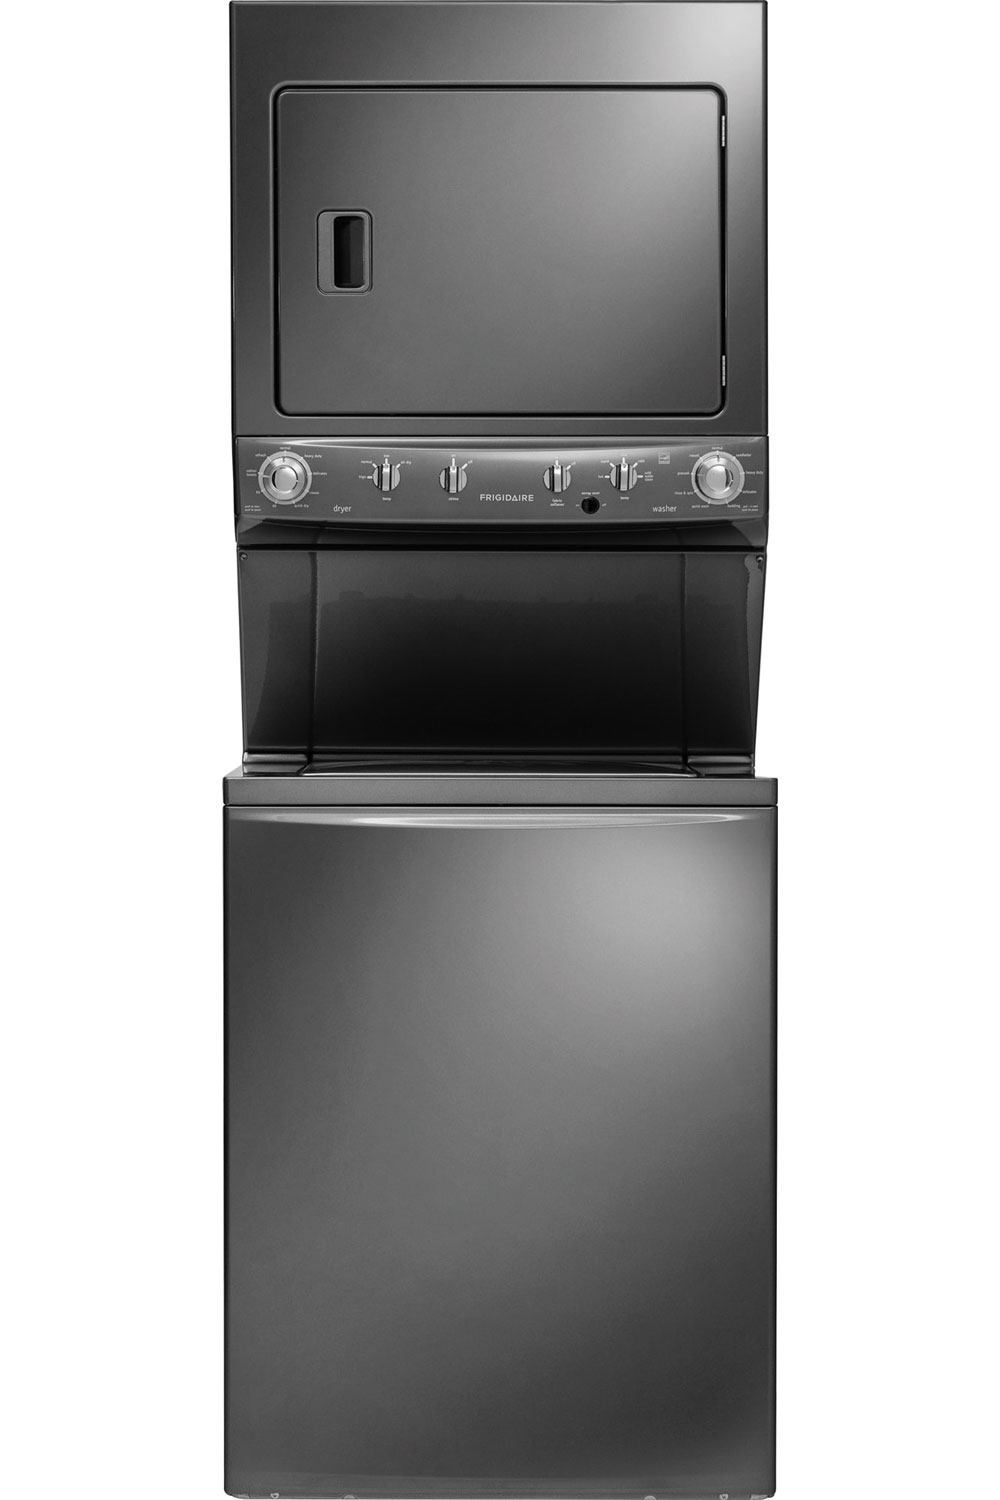 Washer And Dryer ~ Frigidaire electric washer and dryer combo ffle qt